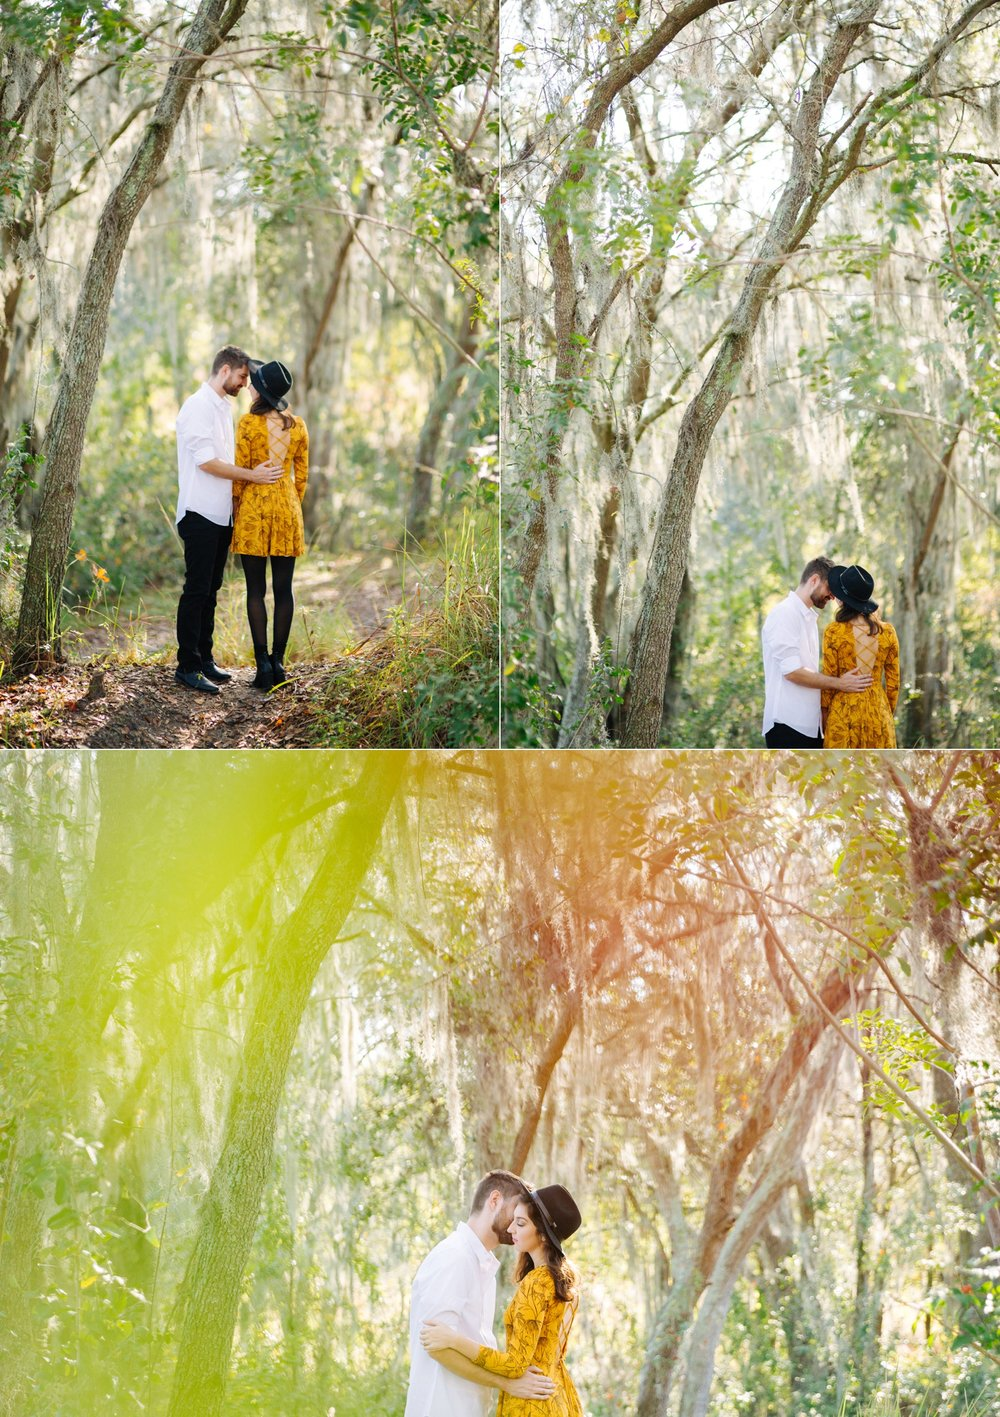 tampa engagement photographer jarrod kayleigh proposal jake and katie photography-016.jpg